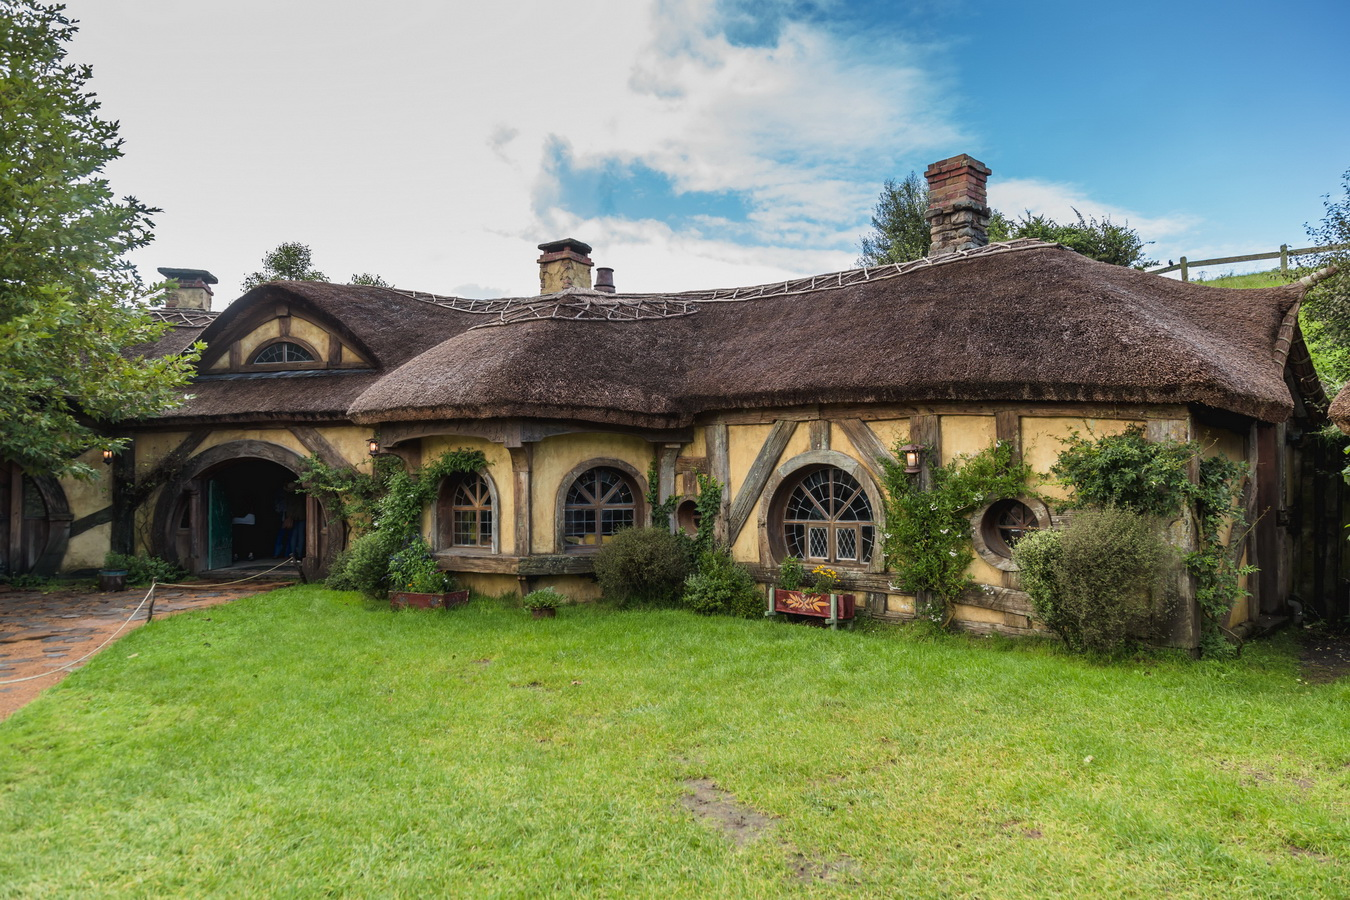 hobbit bar,The Hobbiton, The Shire,Хоббитшир, Удел, Хоббитания, Заселье, Край,Matamata, North Island ,New Zealand